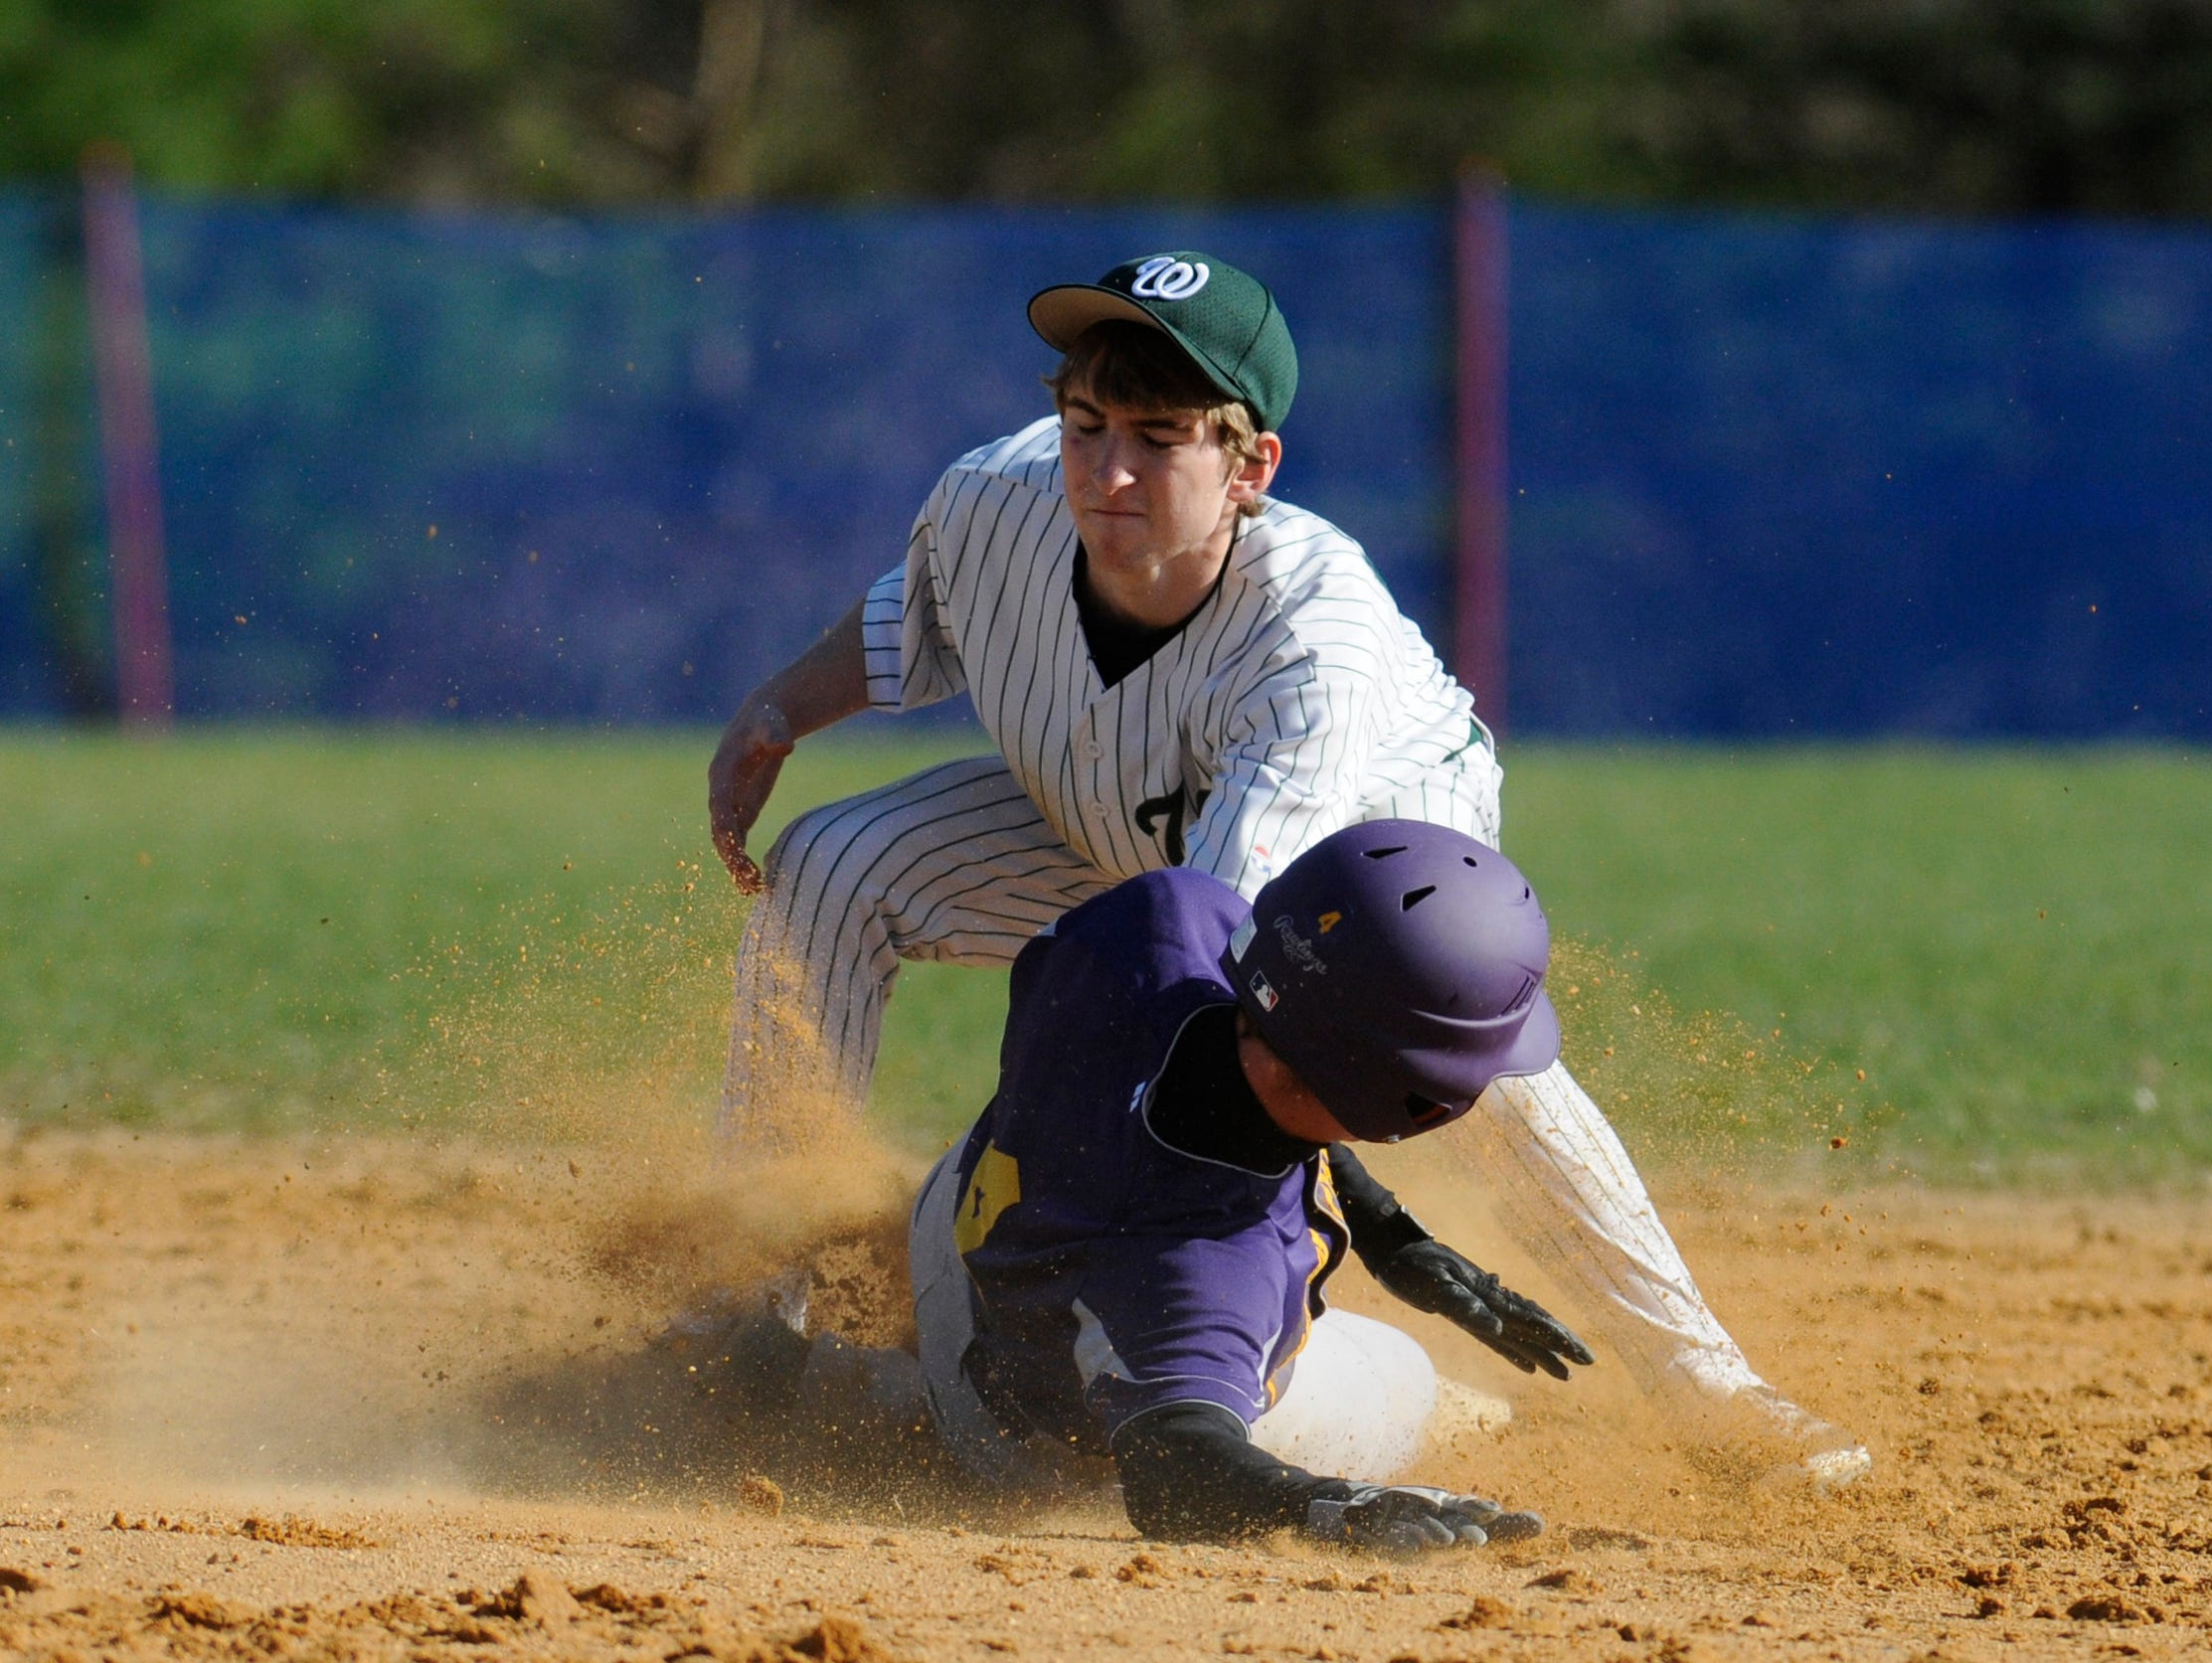 Rhinebeck's Chris Cassens slides into second base under Webutuck's Chris Milano during Wednesday's game at Rhinebeck.